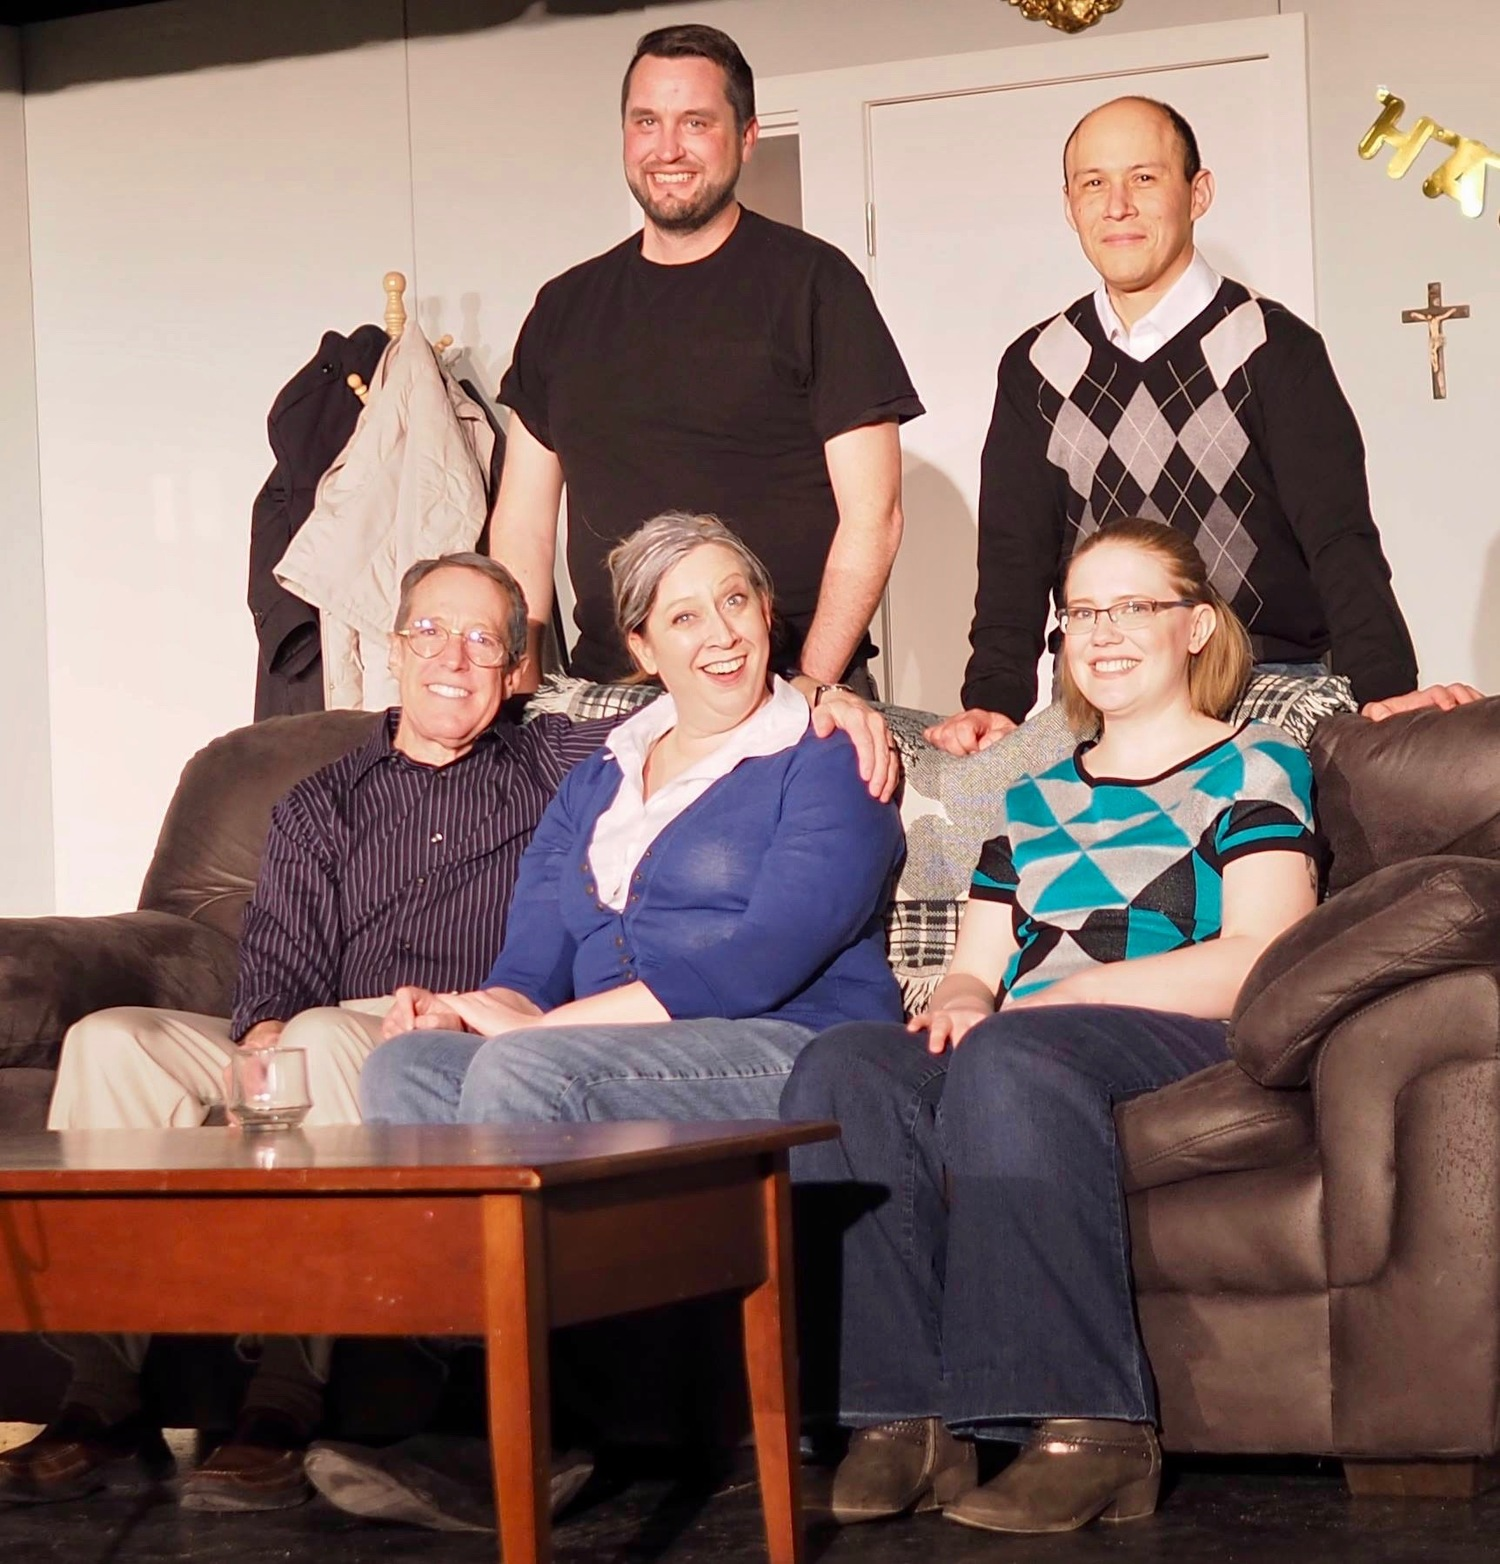 BWW Review: MAKING GOD LAUGH Will Make You Glad You Saw It at Florence Community Theater